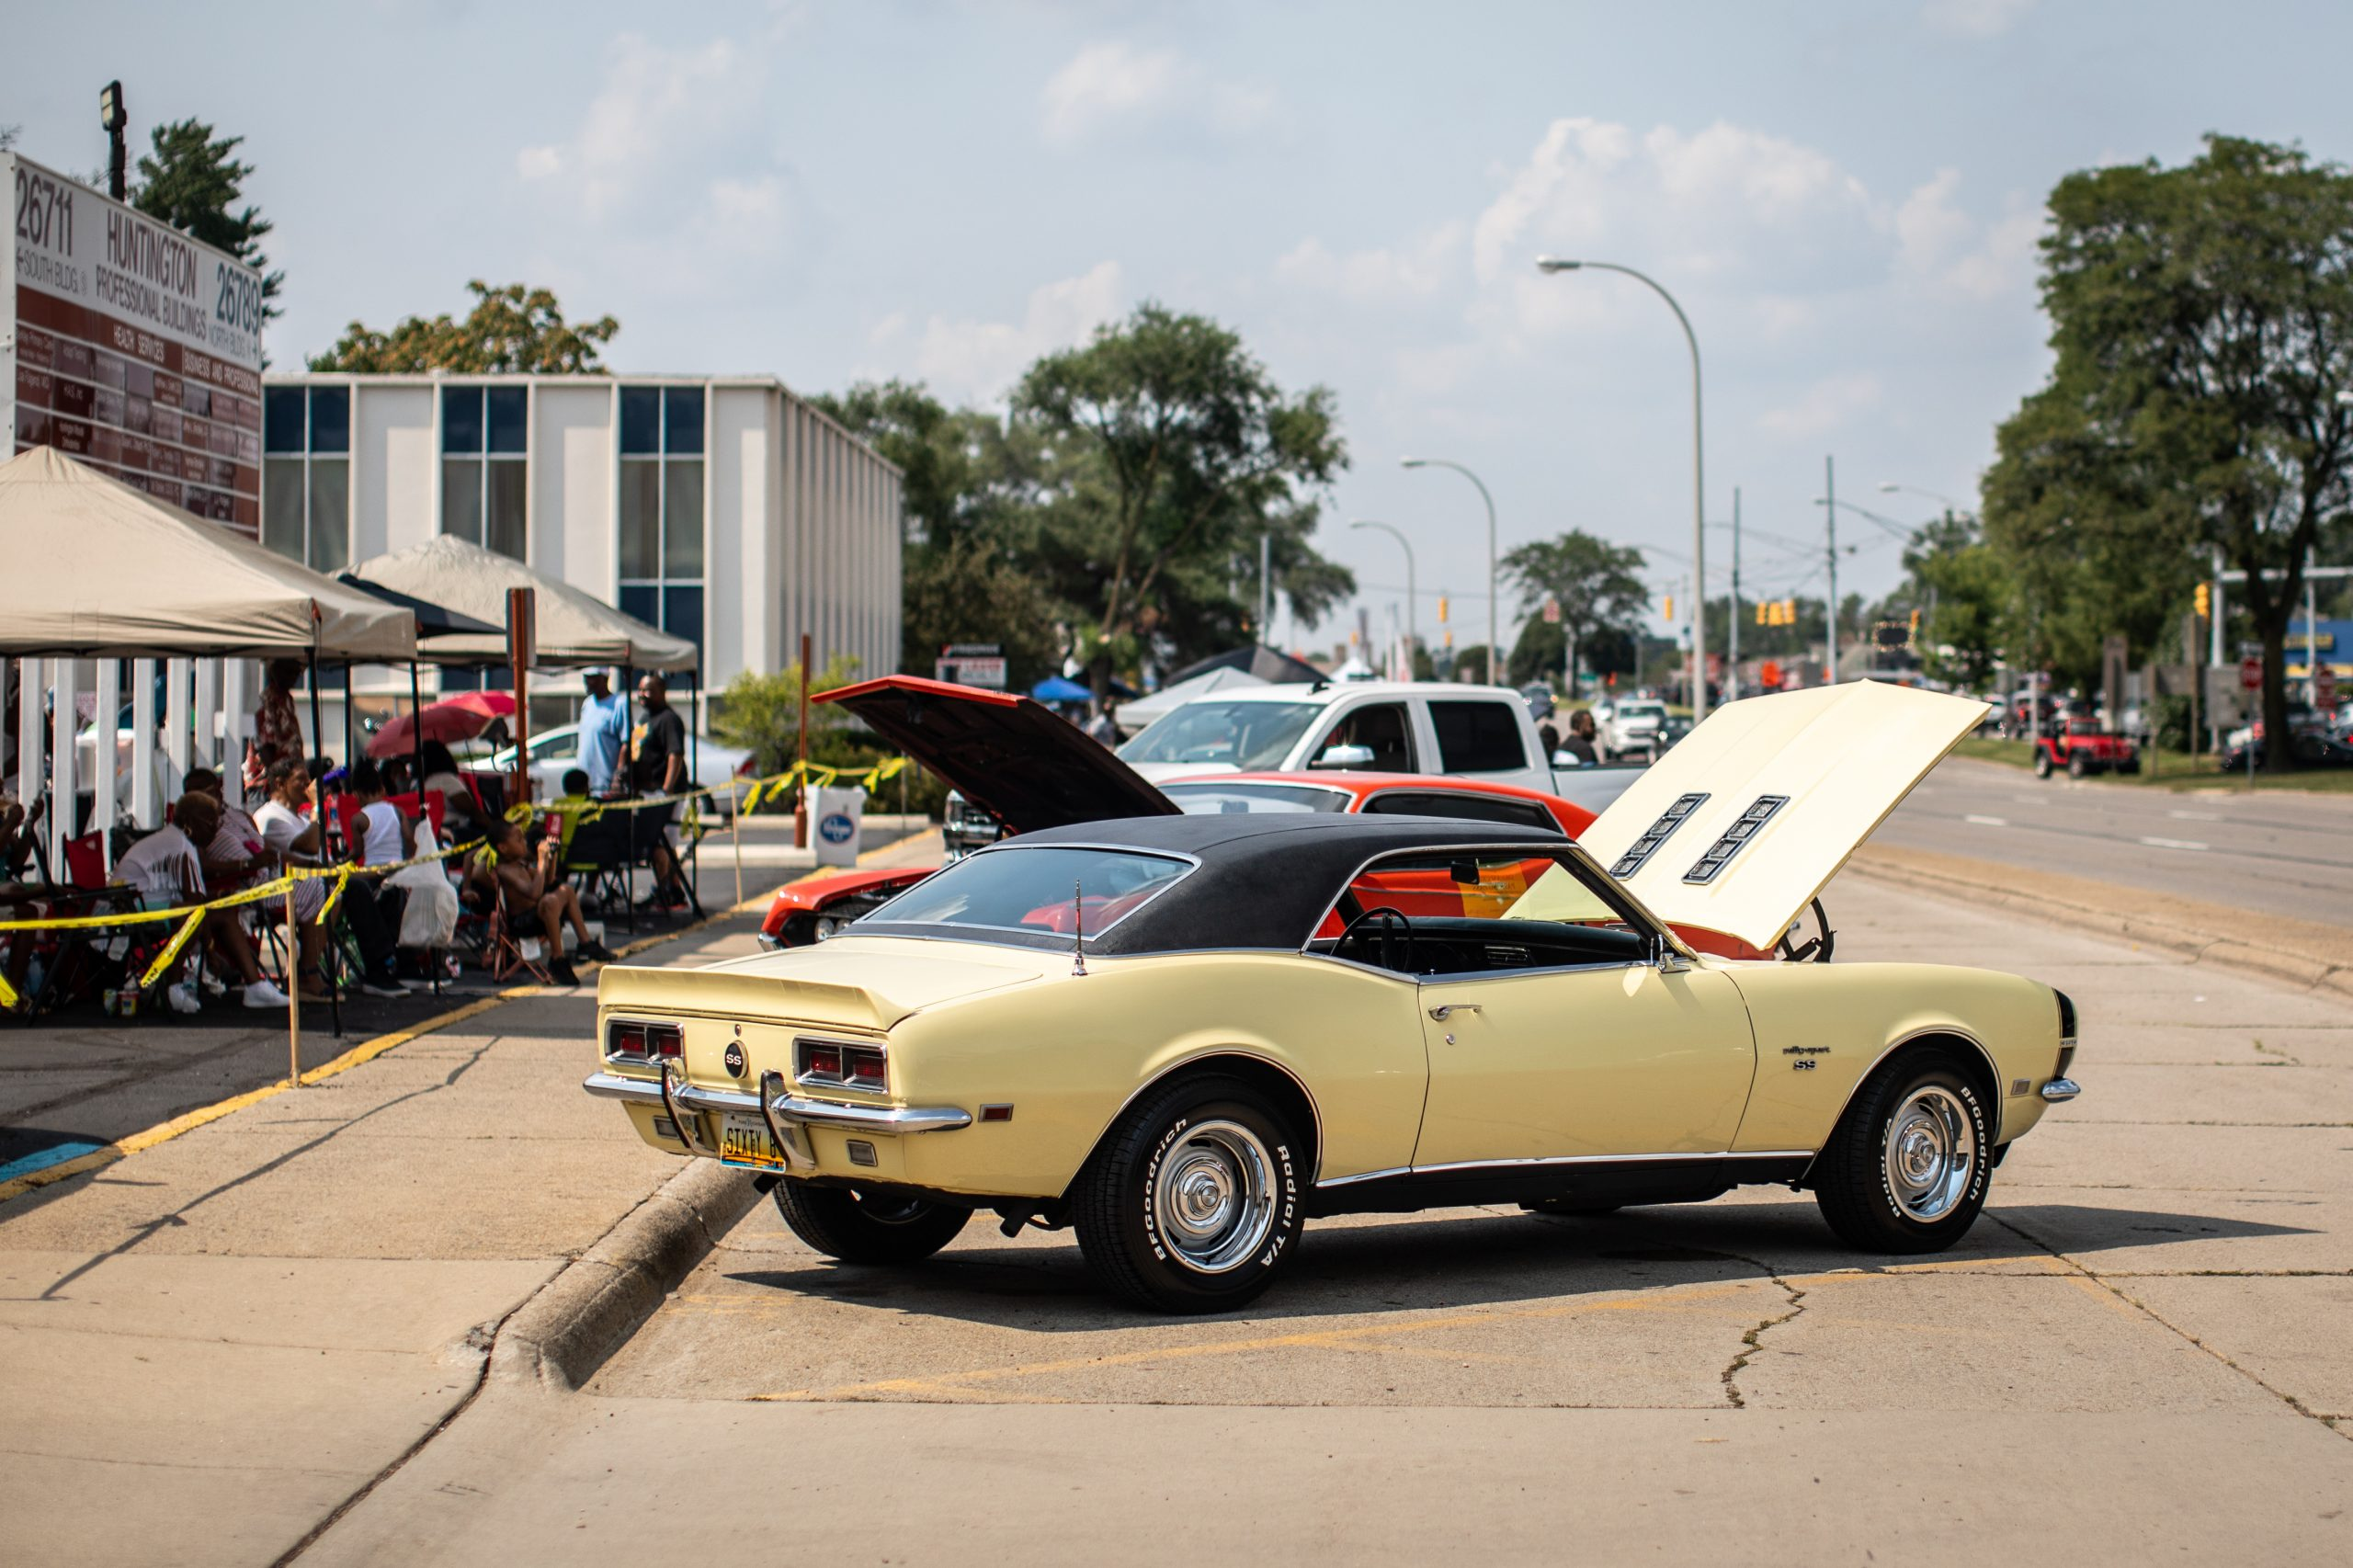 2021 Dream Cruise woodward ave route hoods up